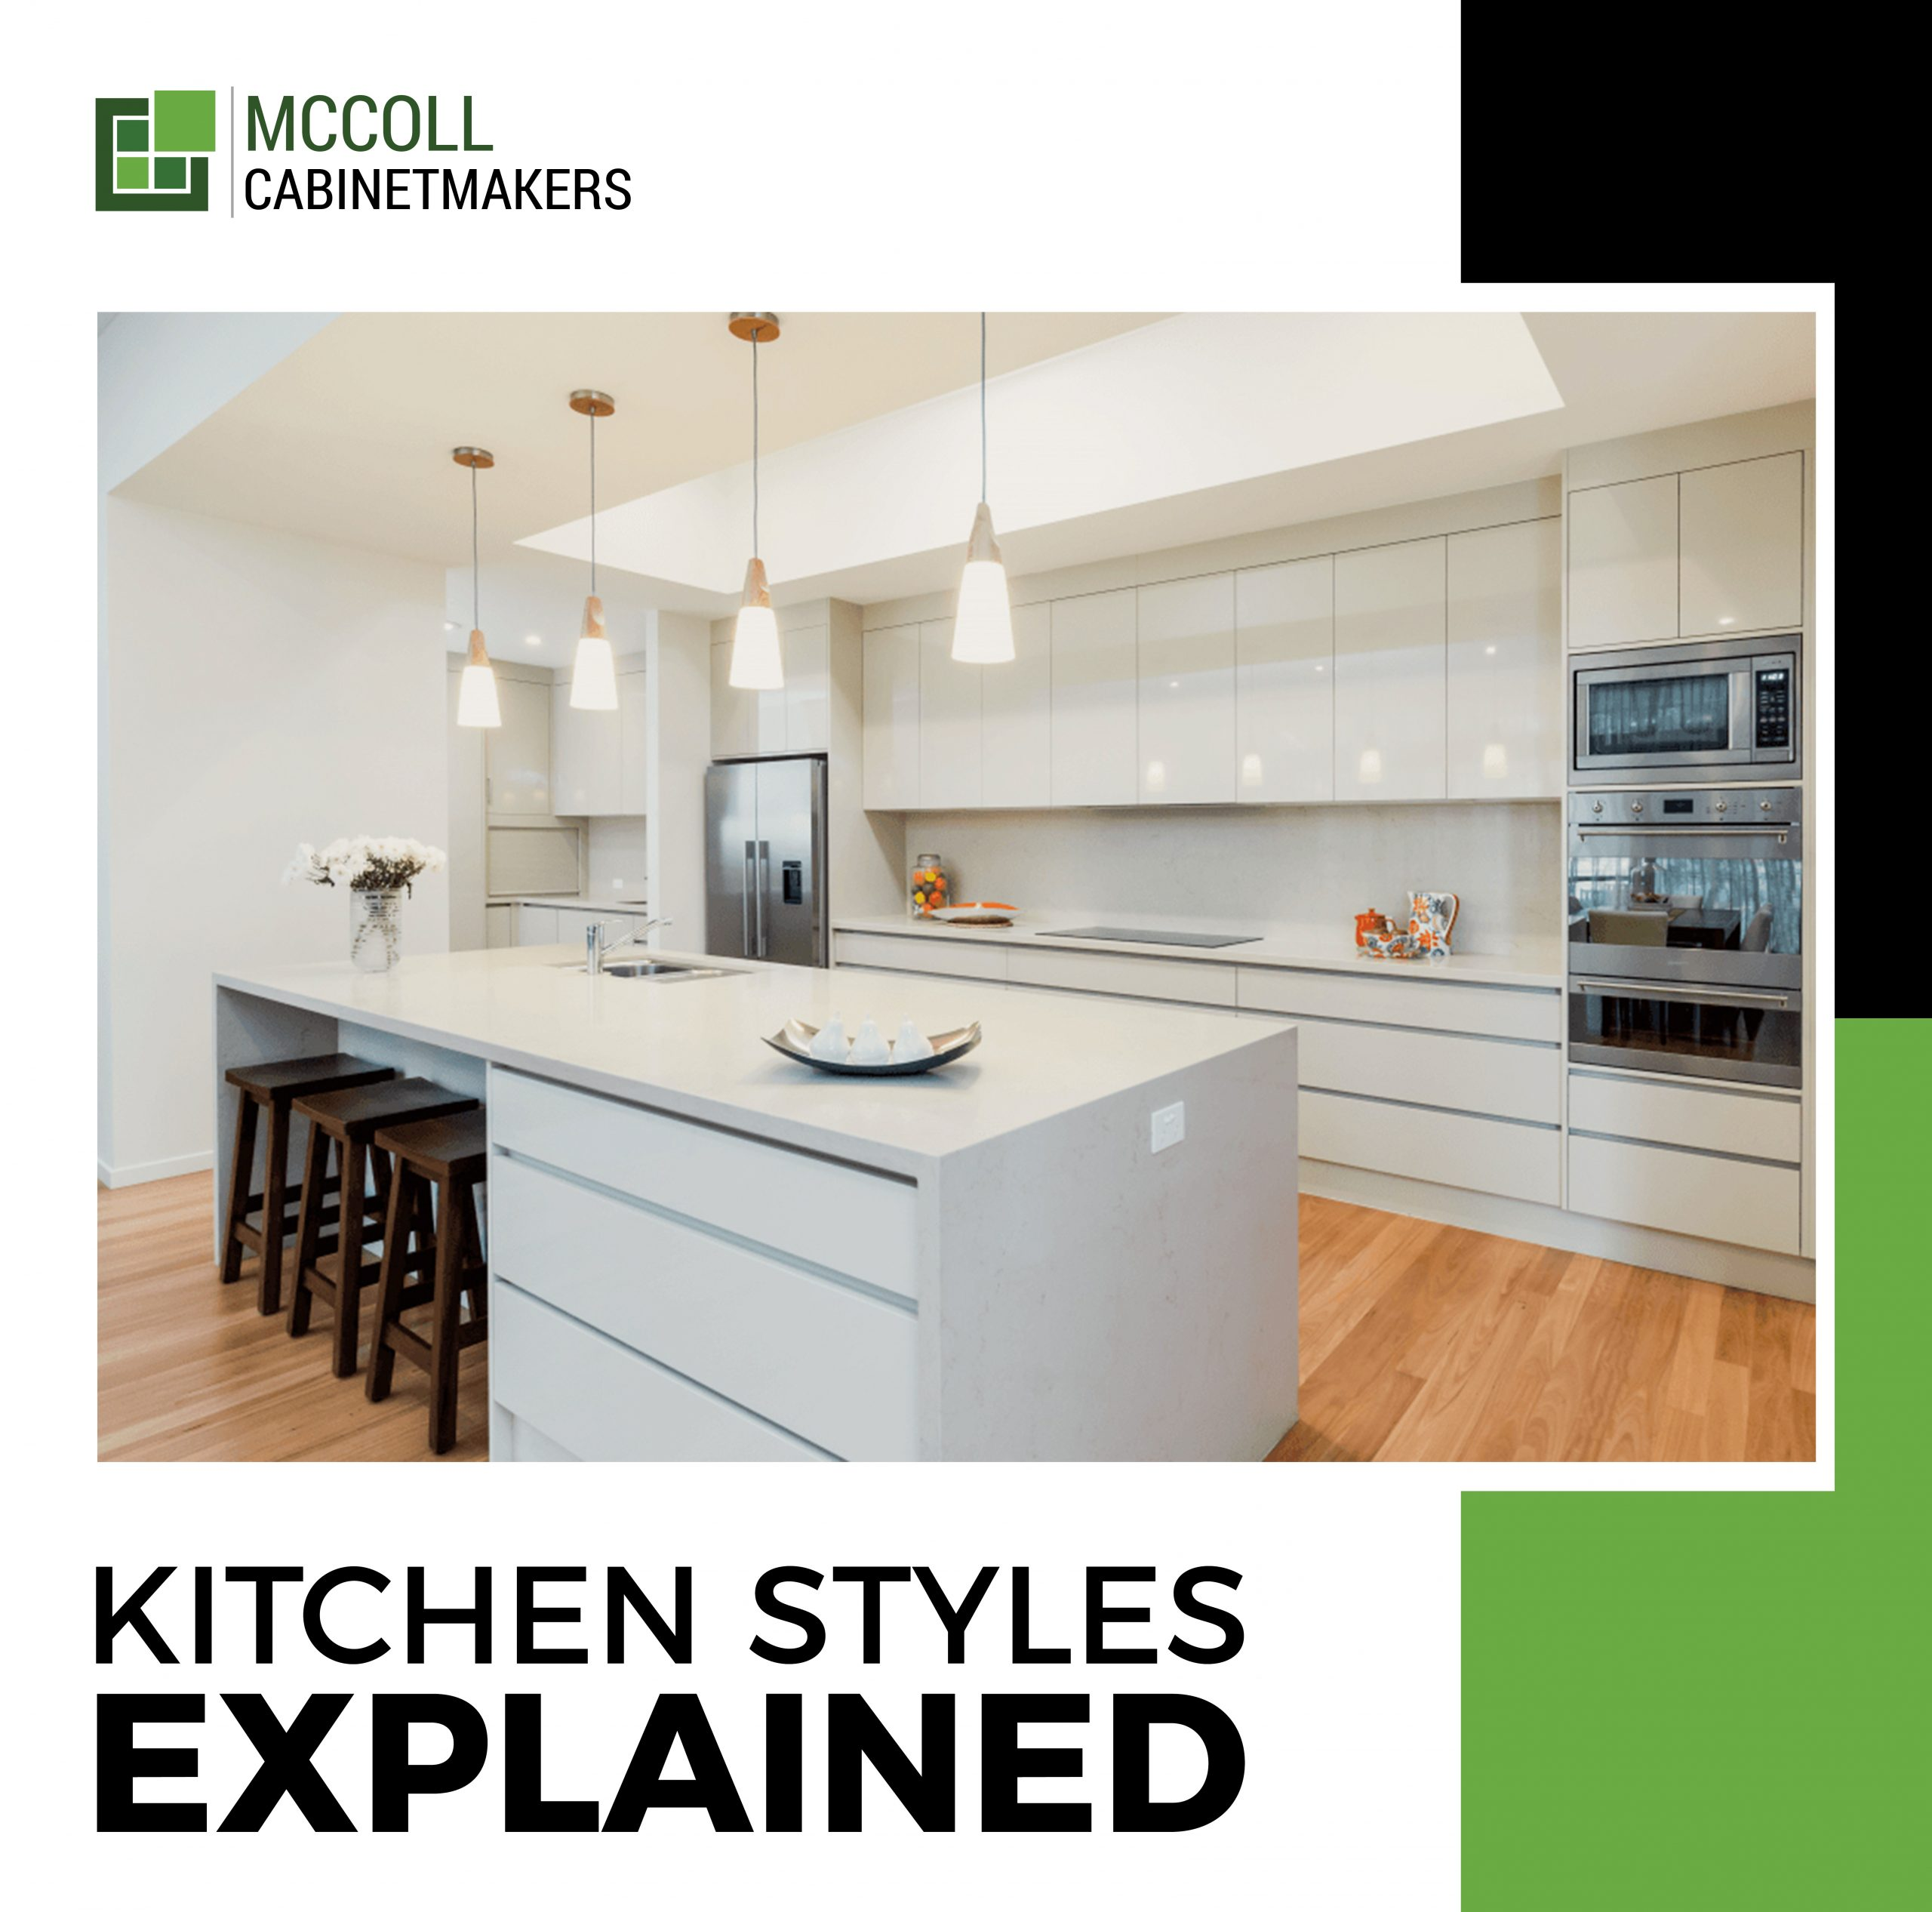 The different styles of kitchens explained.